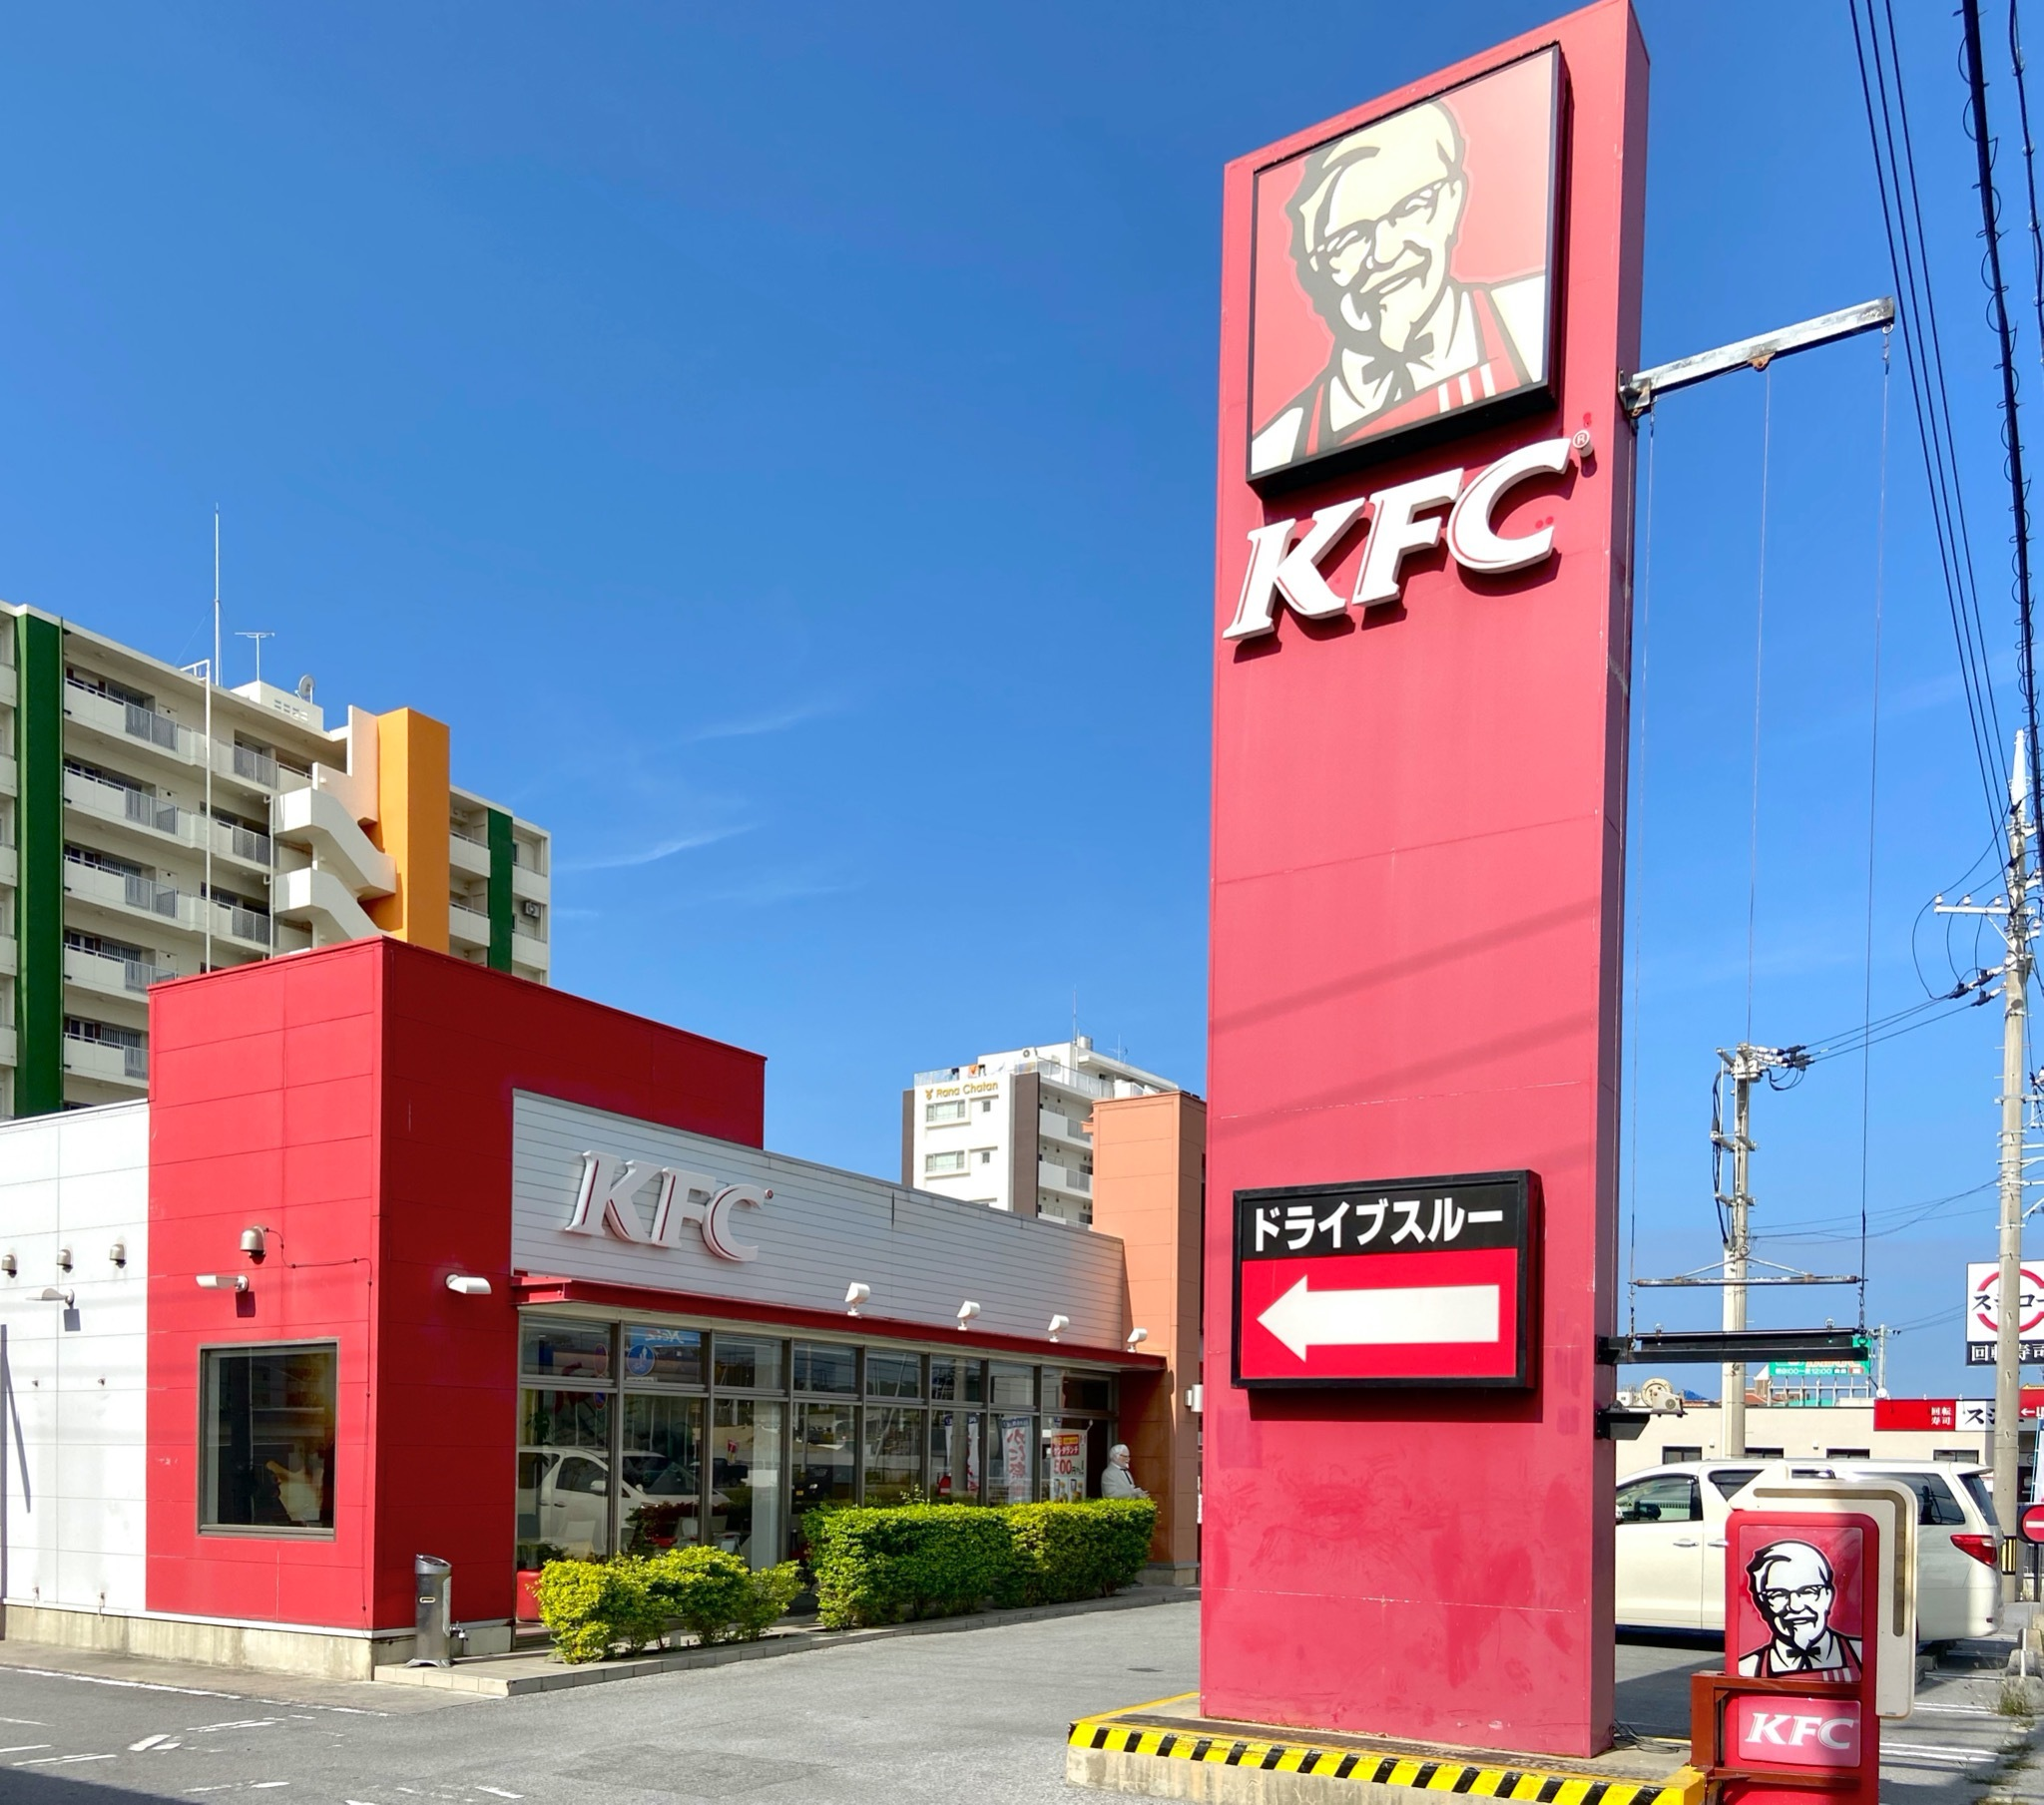 KFC (部屋から車で約6分歩いて約22分) Yakiniku King From the room (about 6 minutes by car, about 22 minutes on foot )